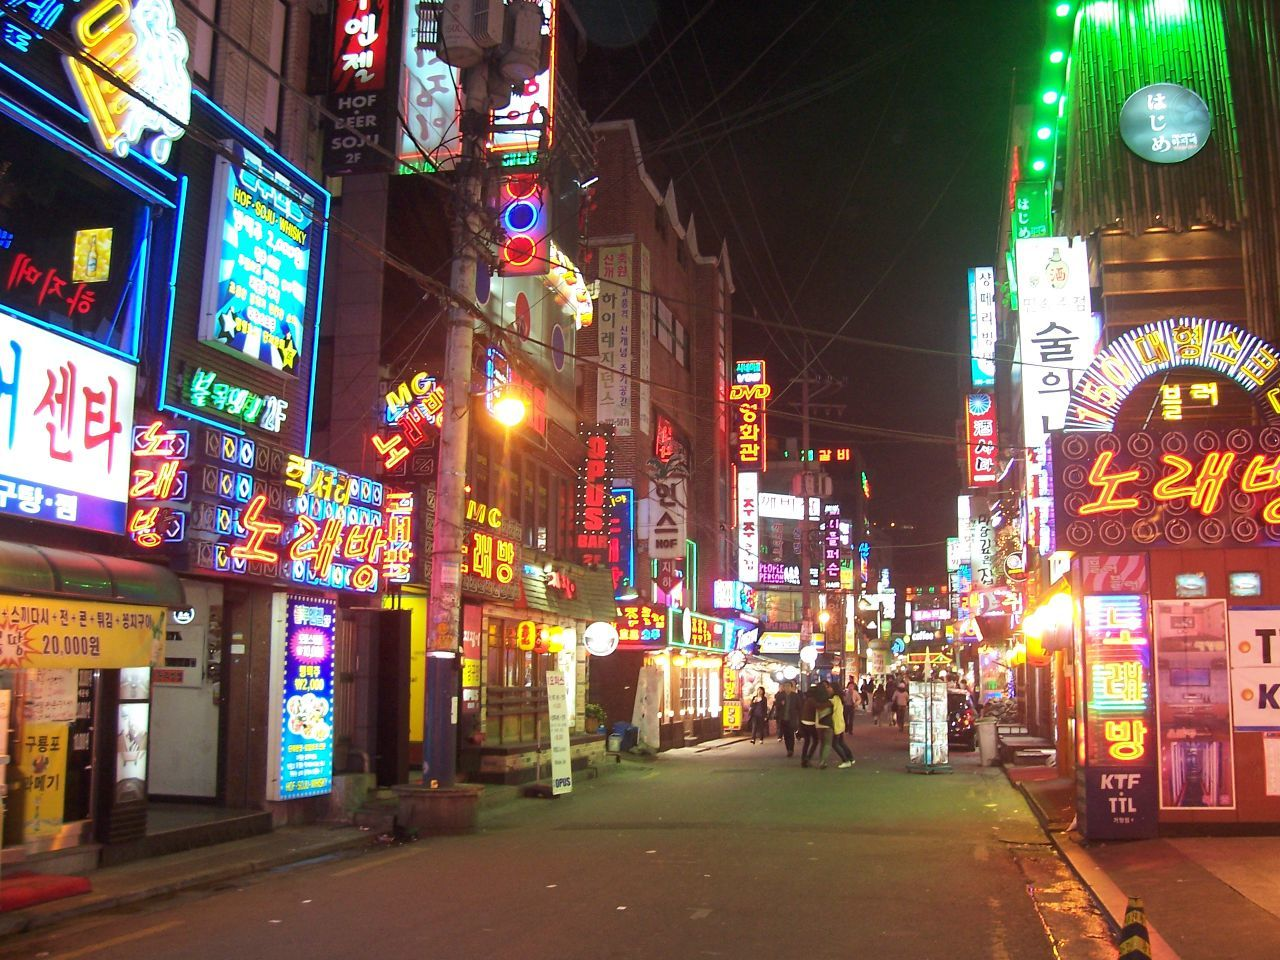 Sinchon-dong has some of the best nightlife in Seoul